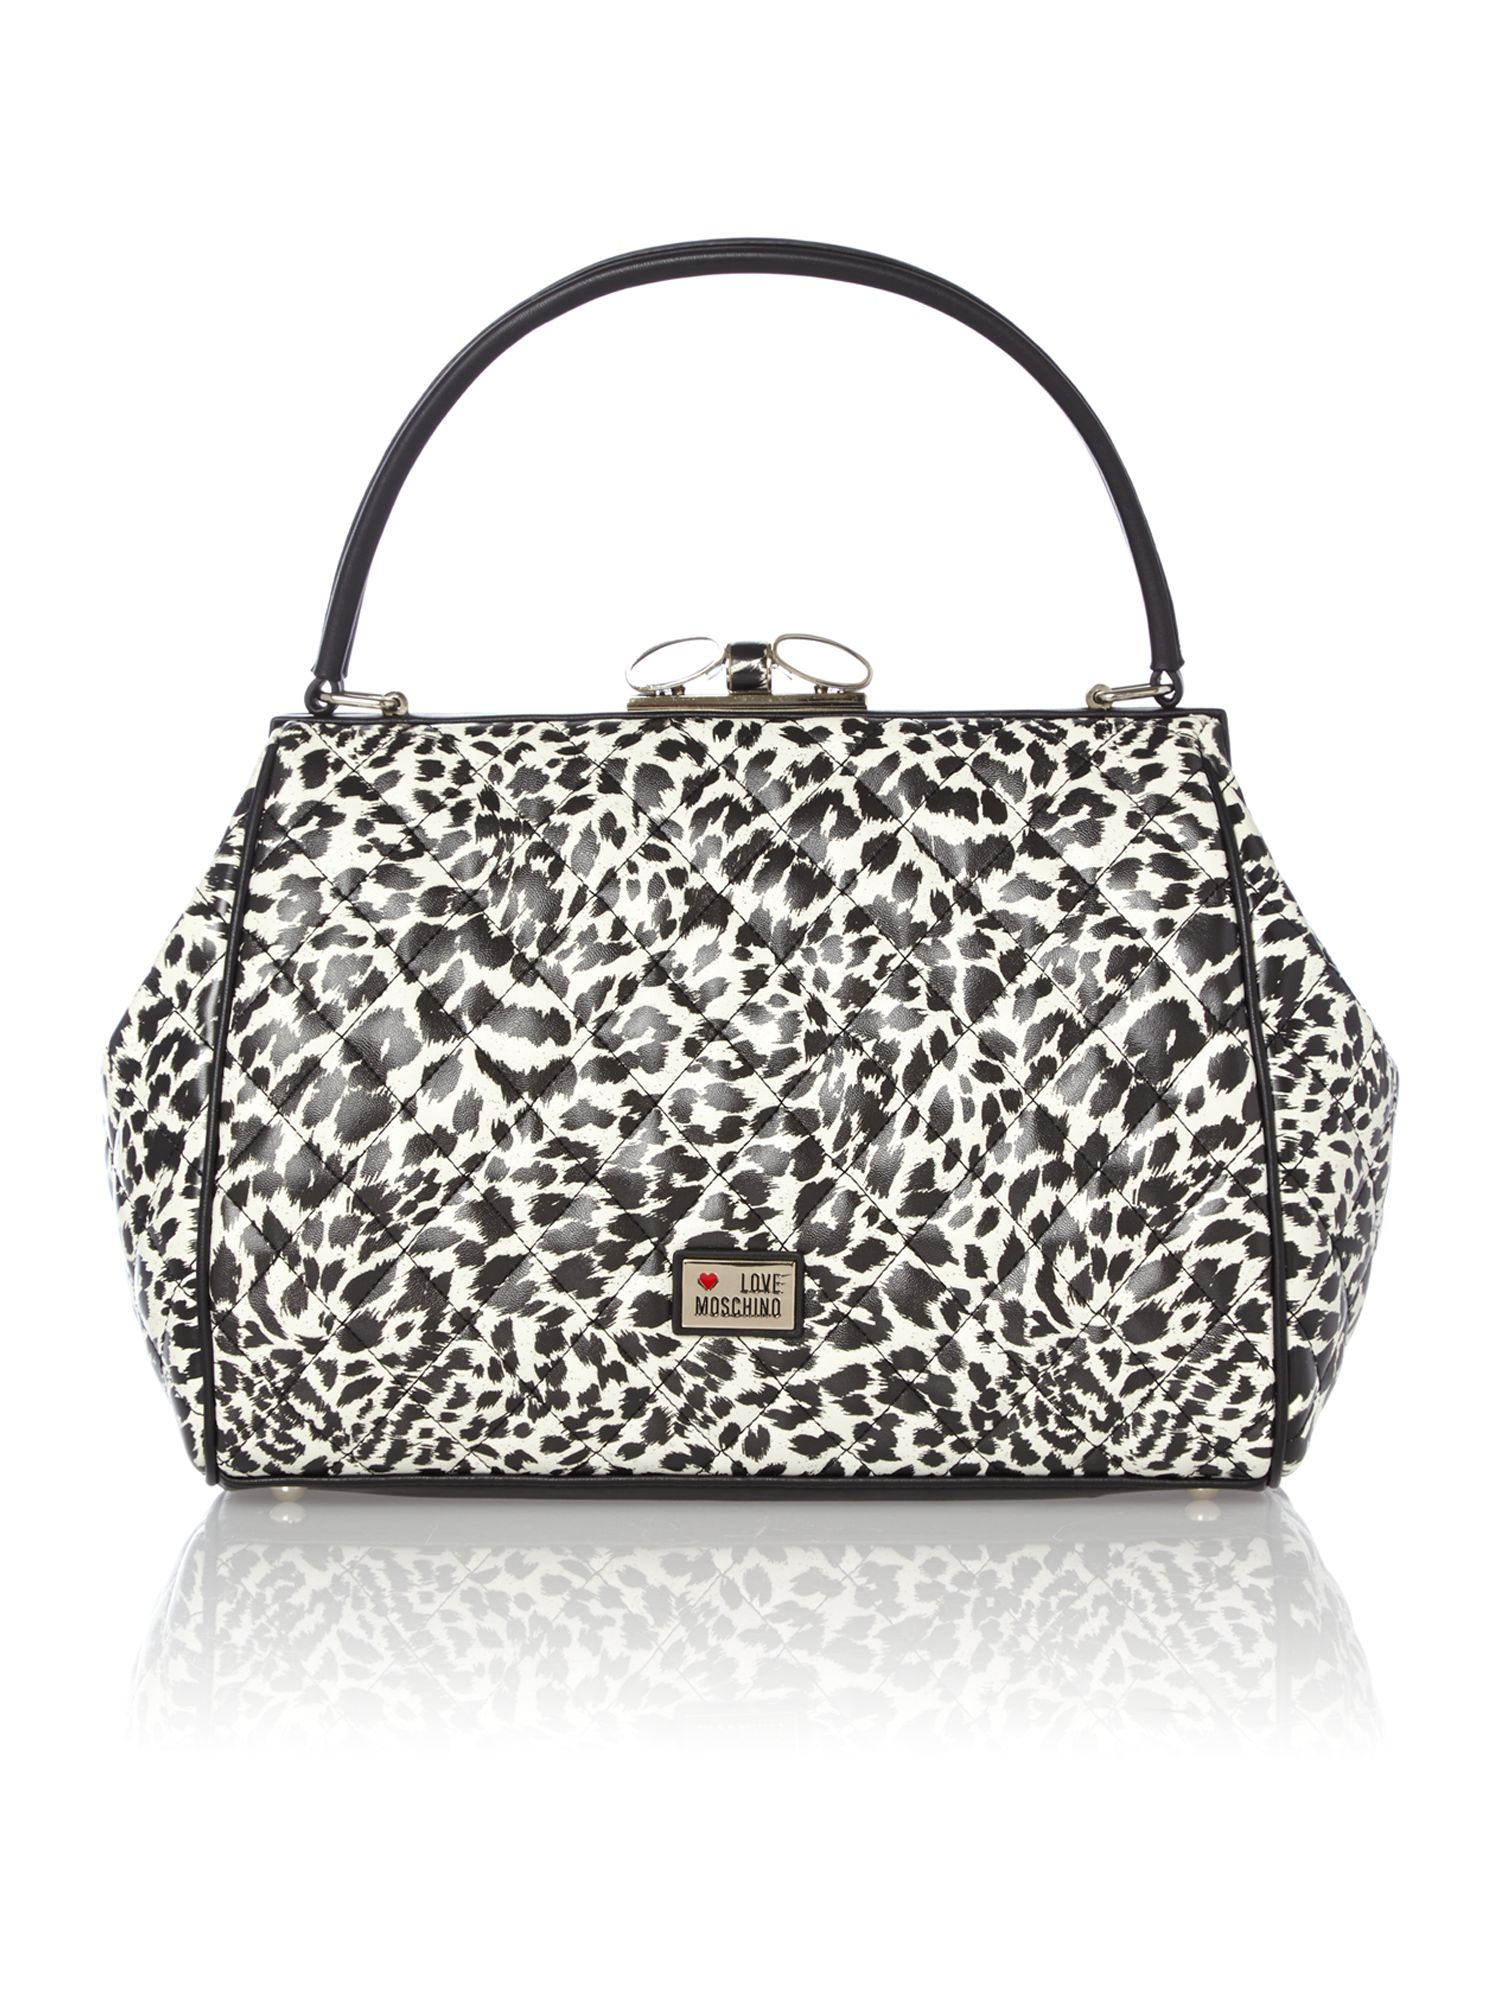 Black and white leopard print shoulder bag